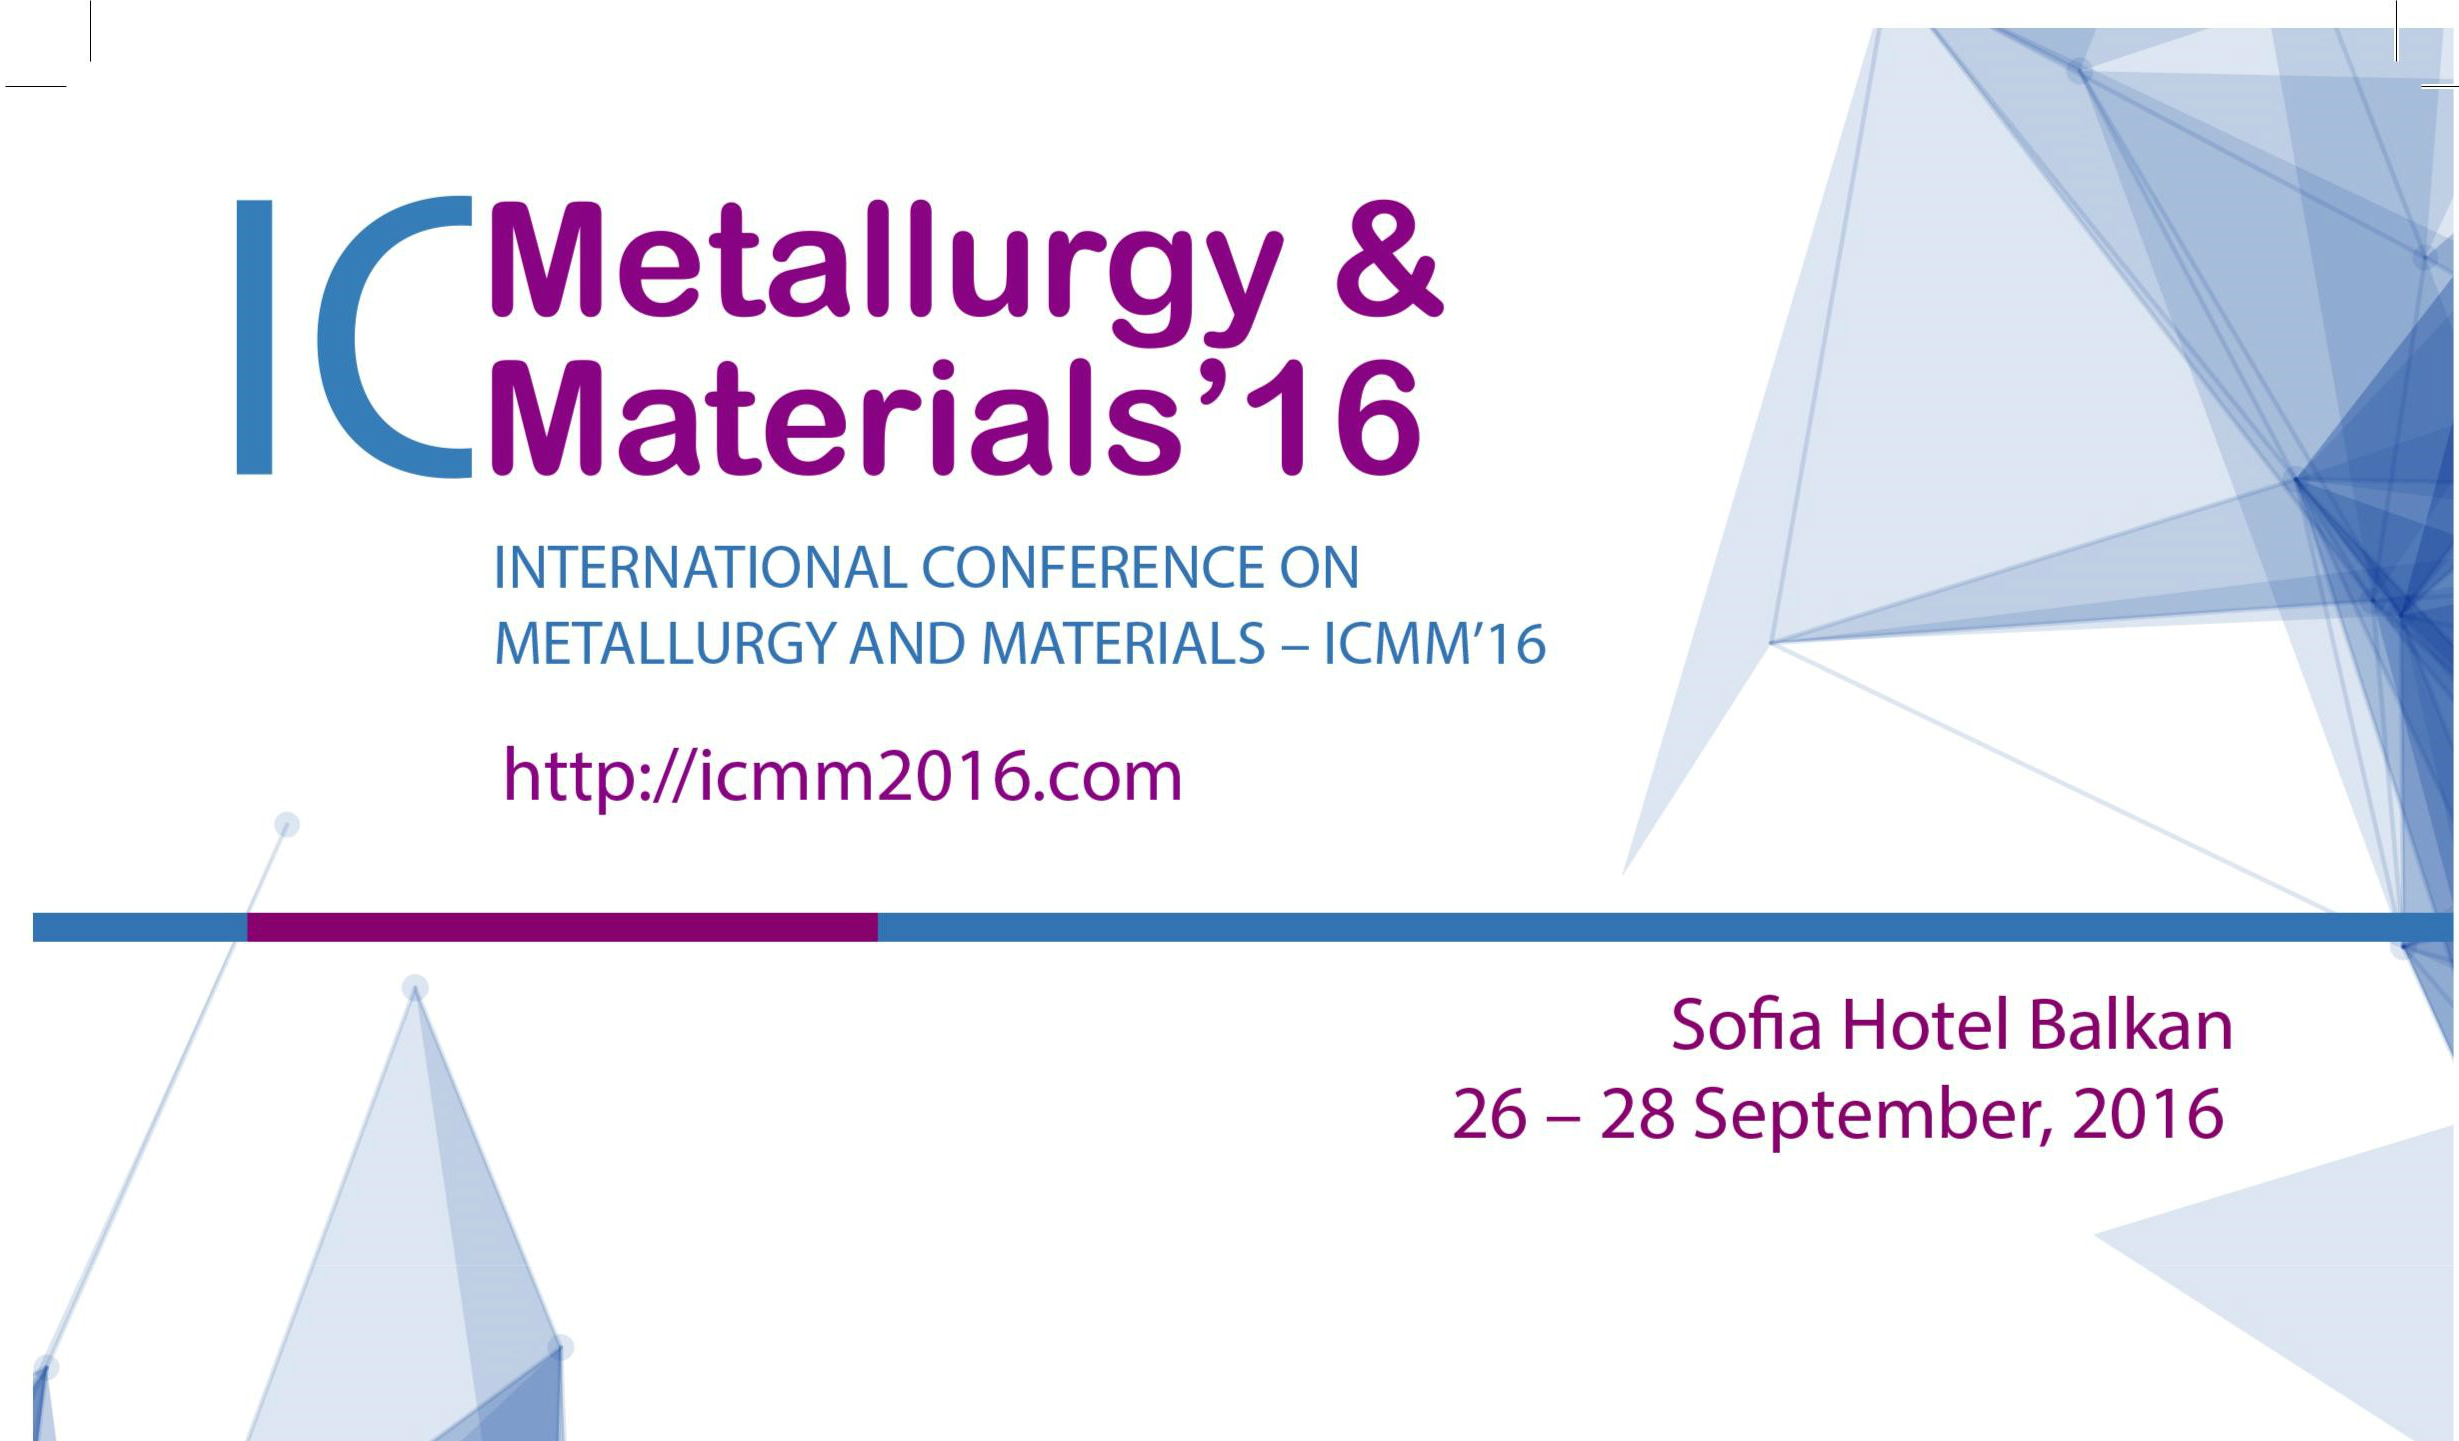 International Conference On Metallurgy And Materials – ICMM'16